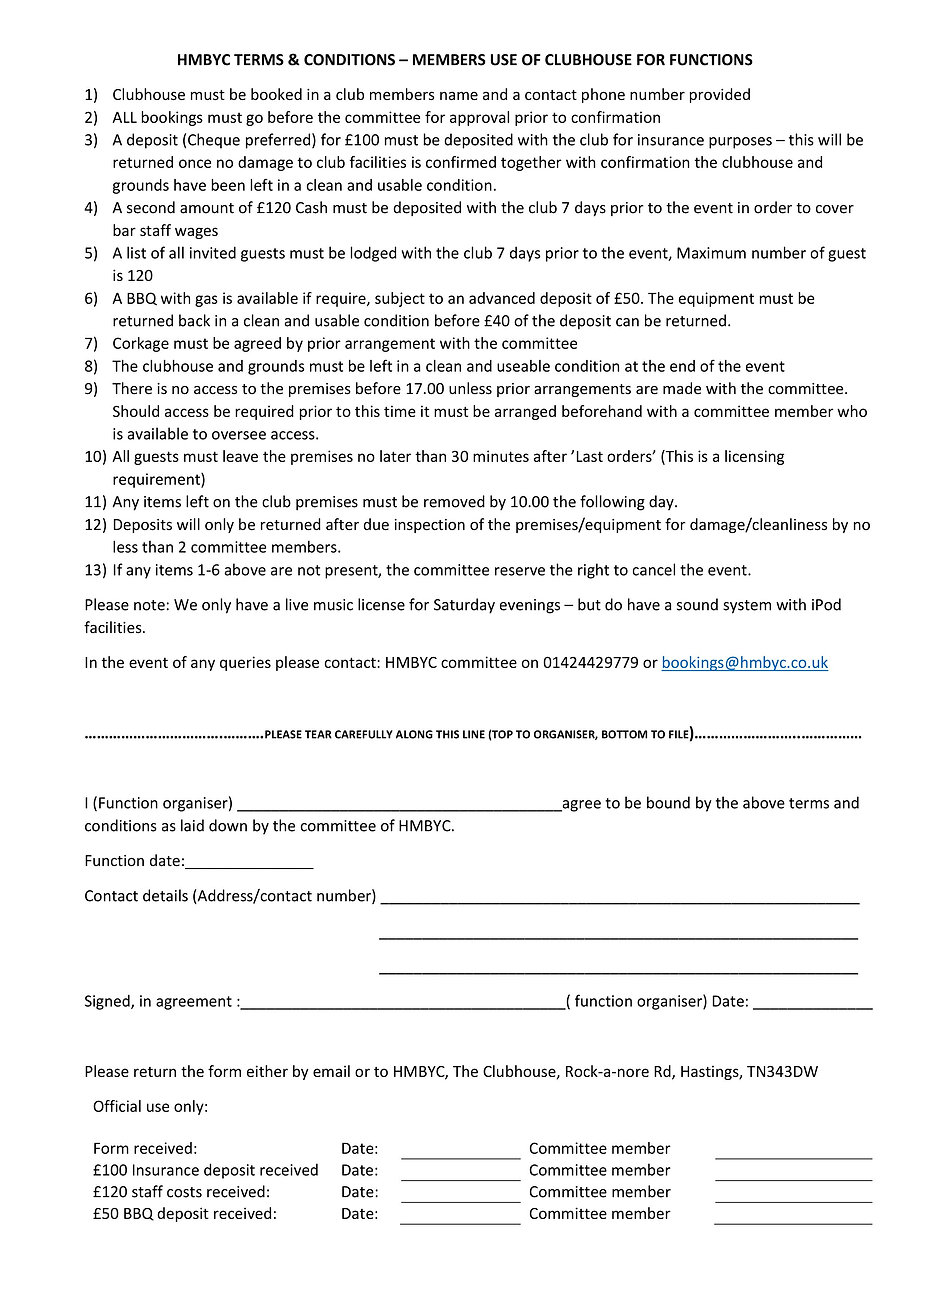 HMBYC Party booking form-converted.jpg